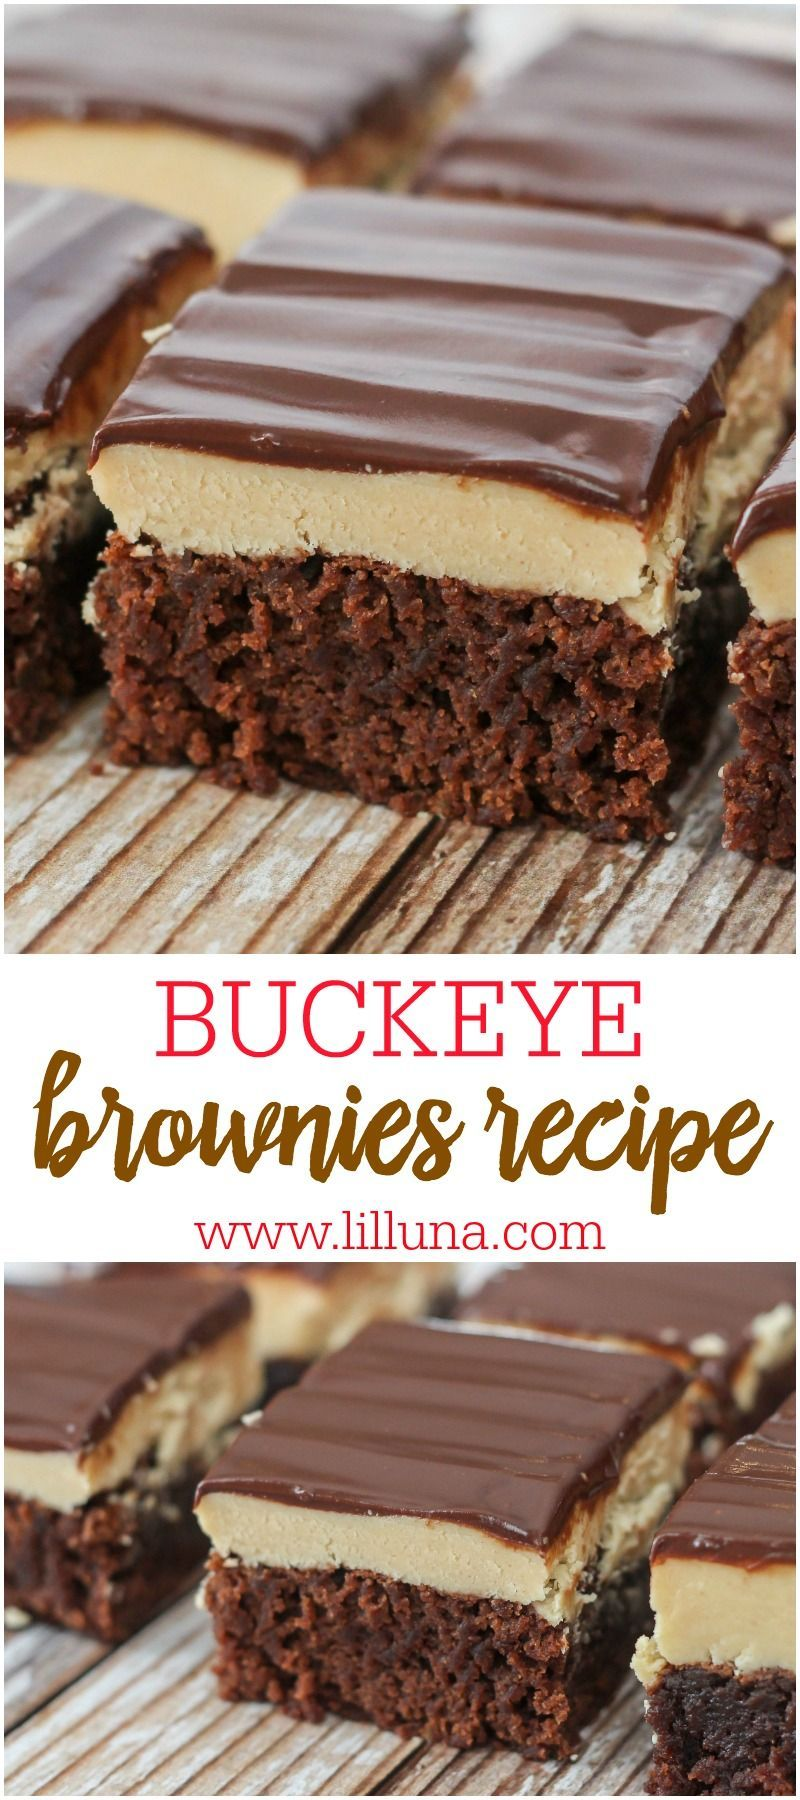 Brownie These Buckeye Brownies have 3 layers of goodness with a brownie base, a peanut butter fudge center and chocolate top. They're the perfect dessert for the chocolate and peanut butter lover.These Buckeye Brownies have 3 layers of goodness with a brownie base, a peanut butter fudge center and chocolate top. They're the perfect dessert for the chocolat...